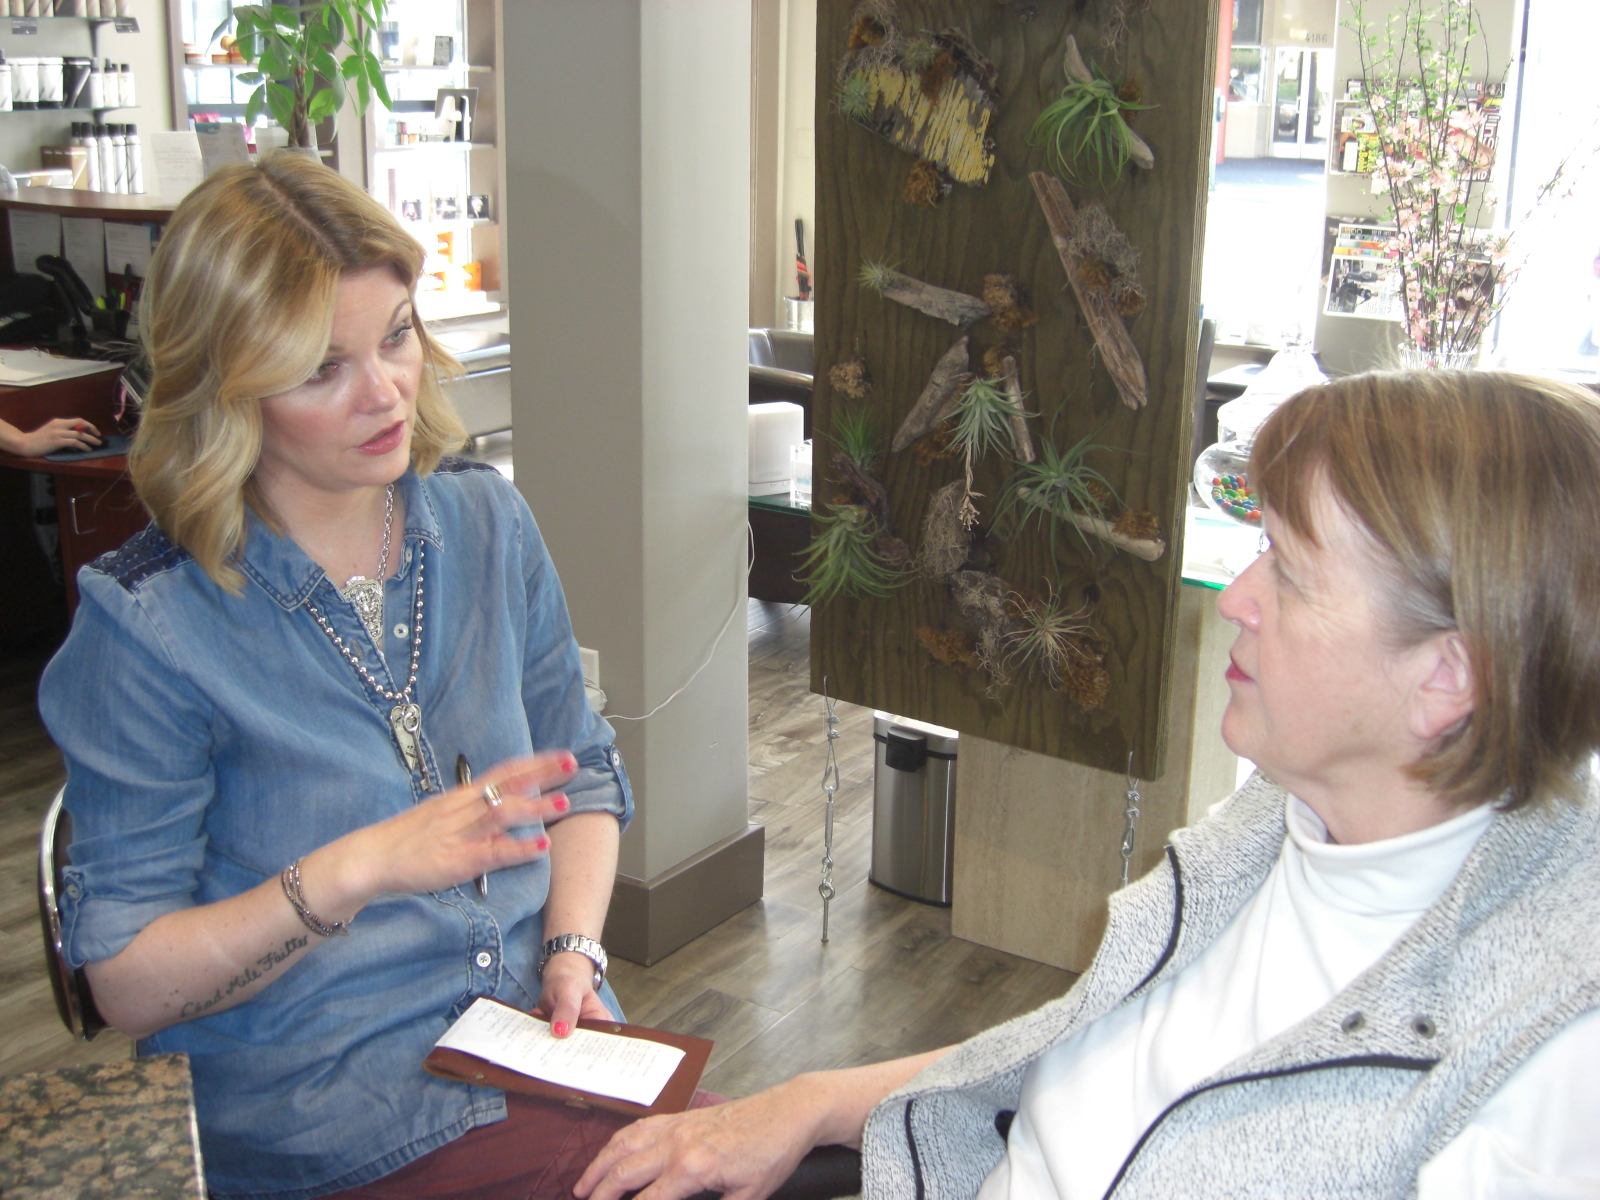 Eryn Harrison, owner of Calm A Salon in Oakland, California, consults with new client Marsha Hiscocks.